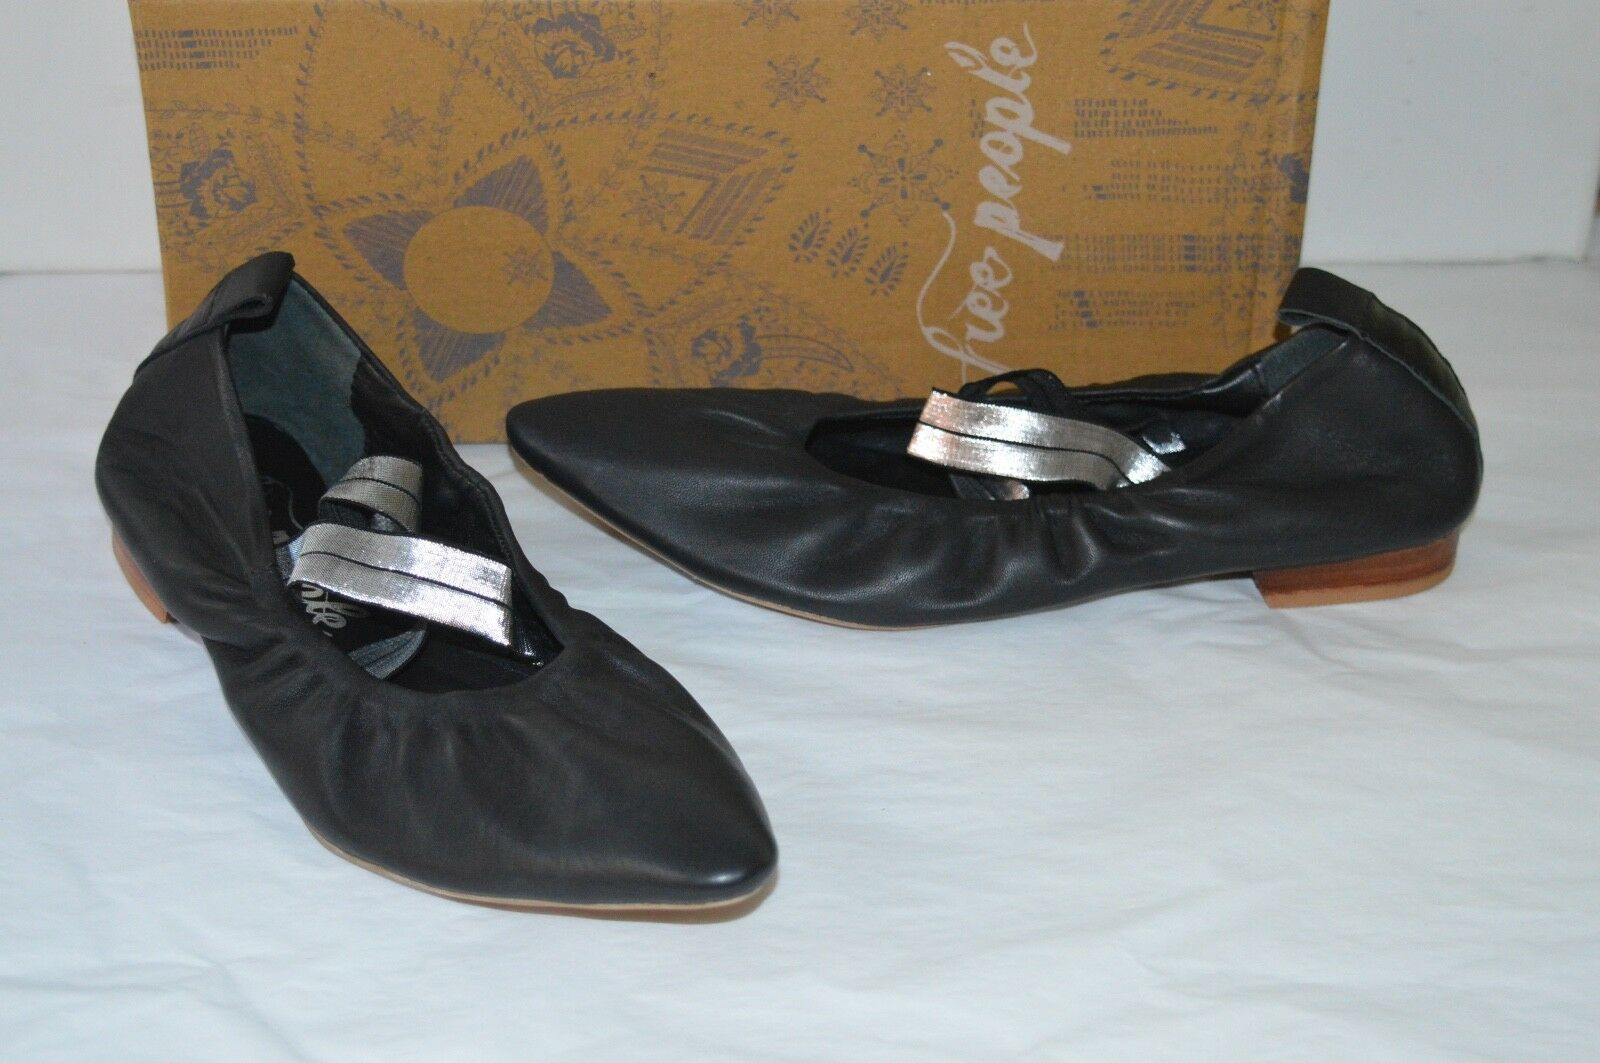 New  78 Free People Solitaire Pointed Toe Flat Black Leather Criss Cross Straps